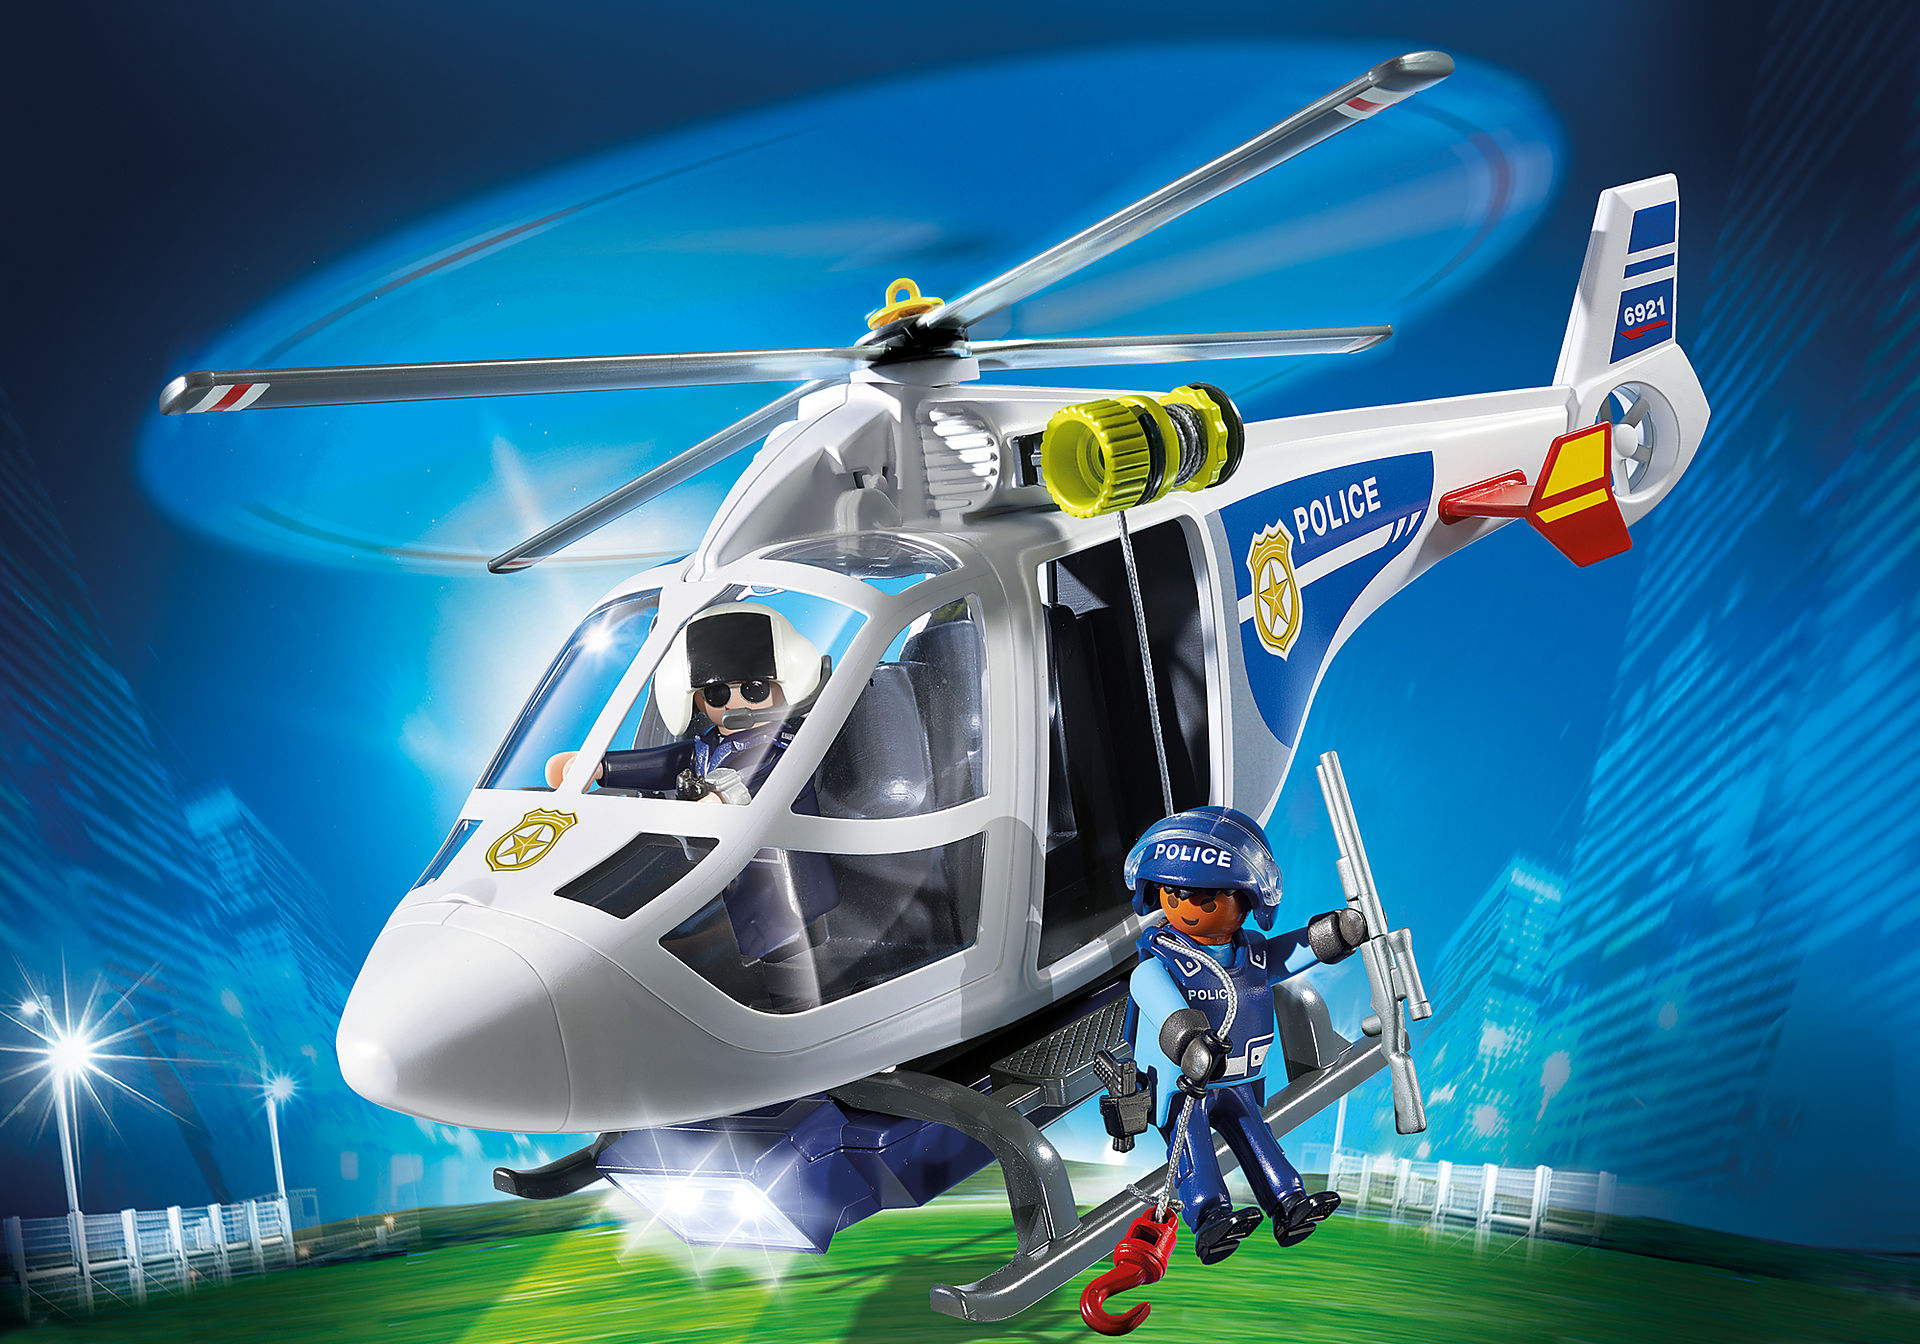 http://media.playmobil.com/i/playmobil/6921_product_detail/Helicóptero de Policía con Luces LED